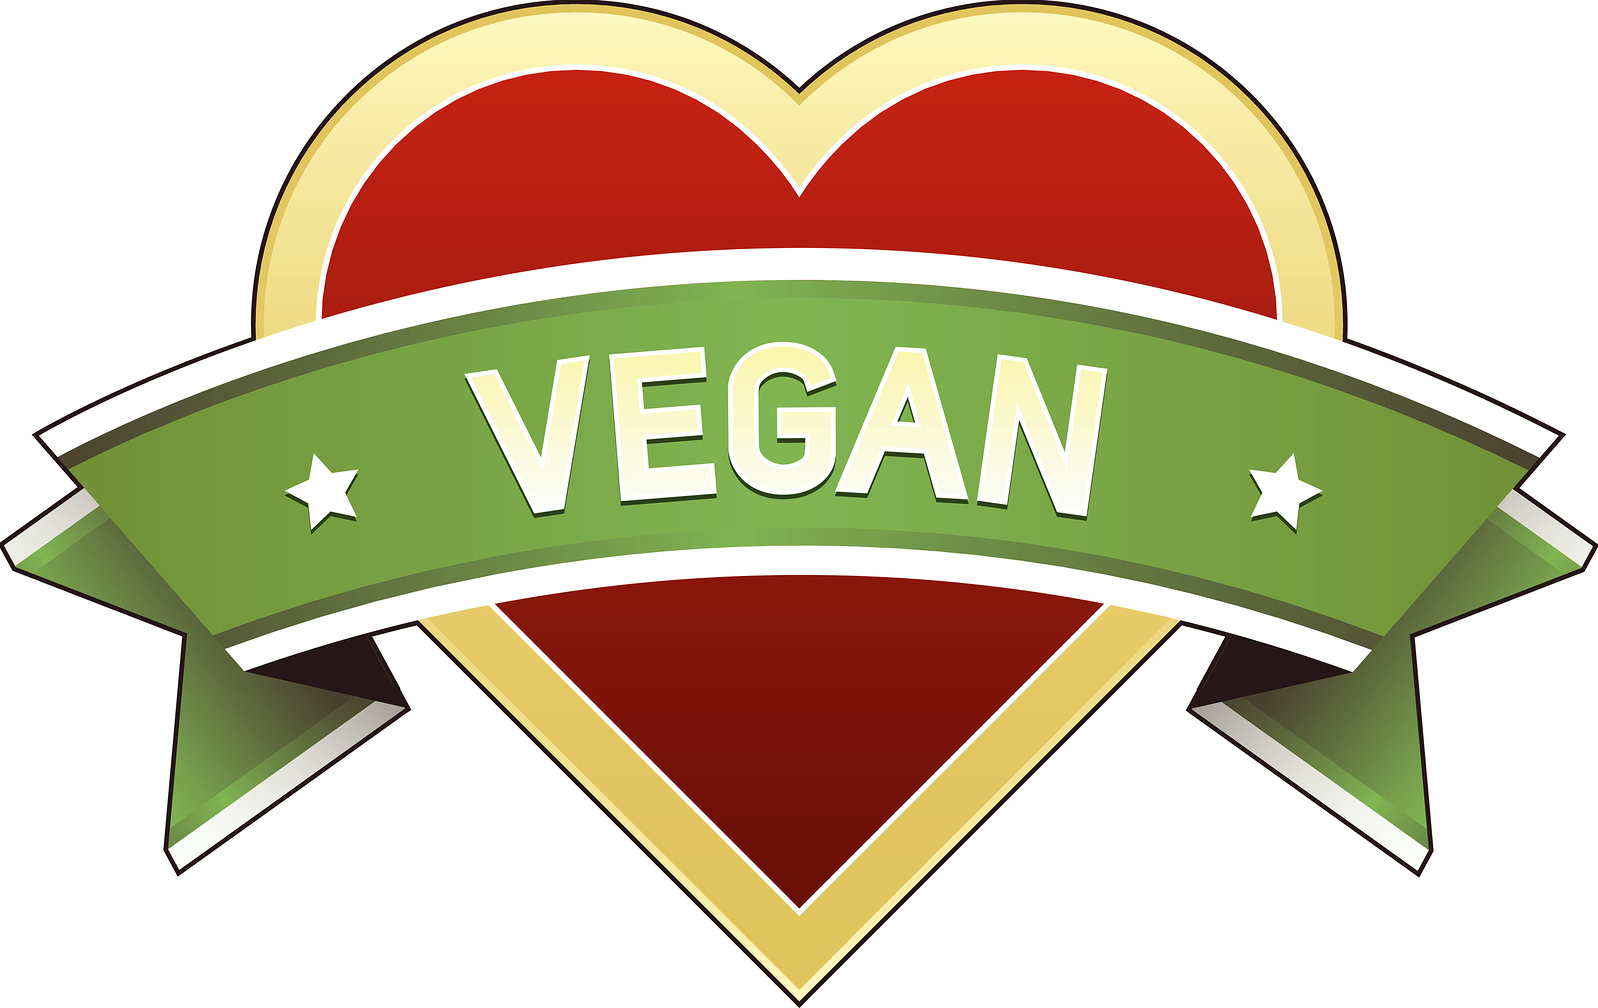 bigstock-Vegan-Food-Label-4899663